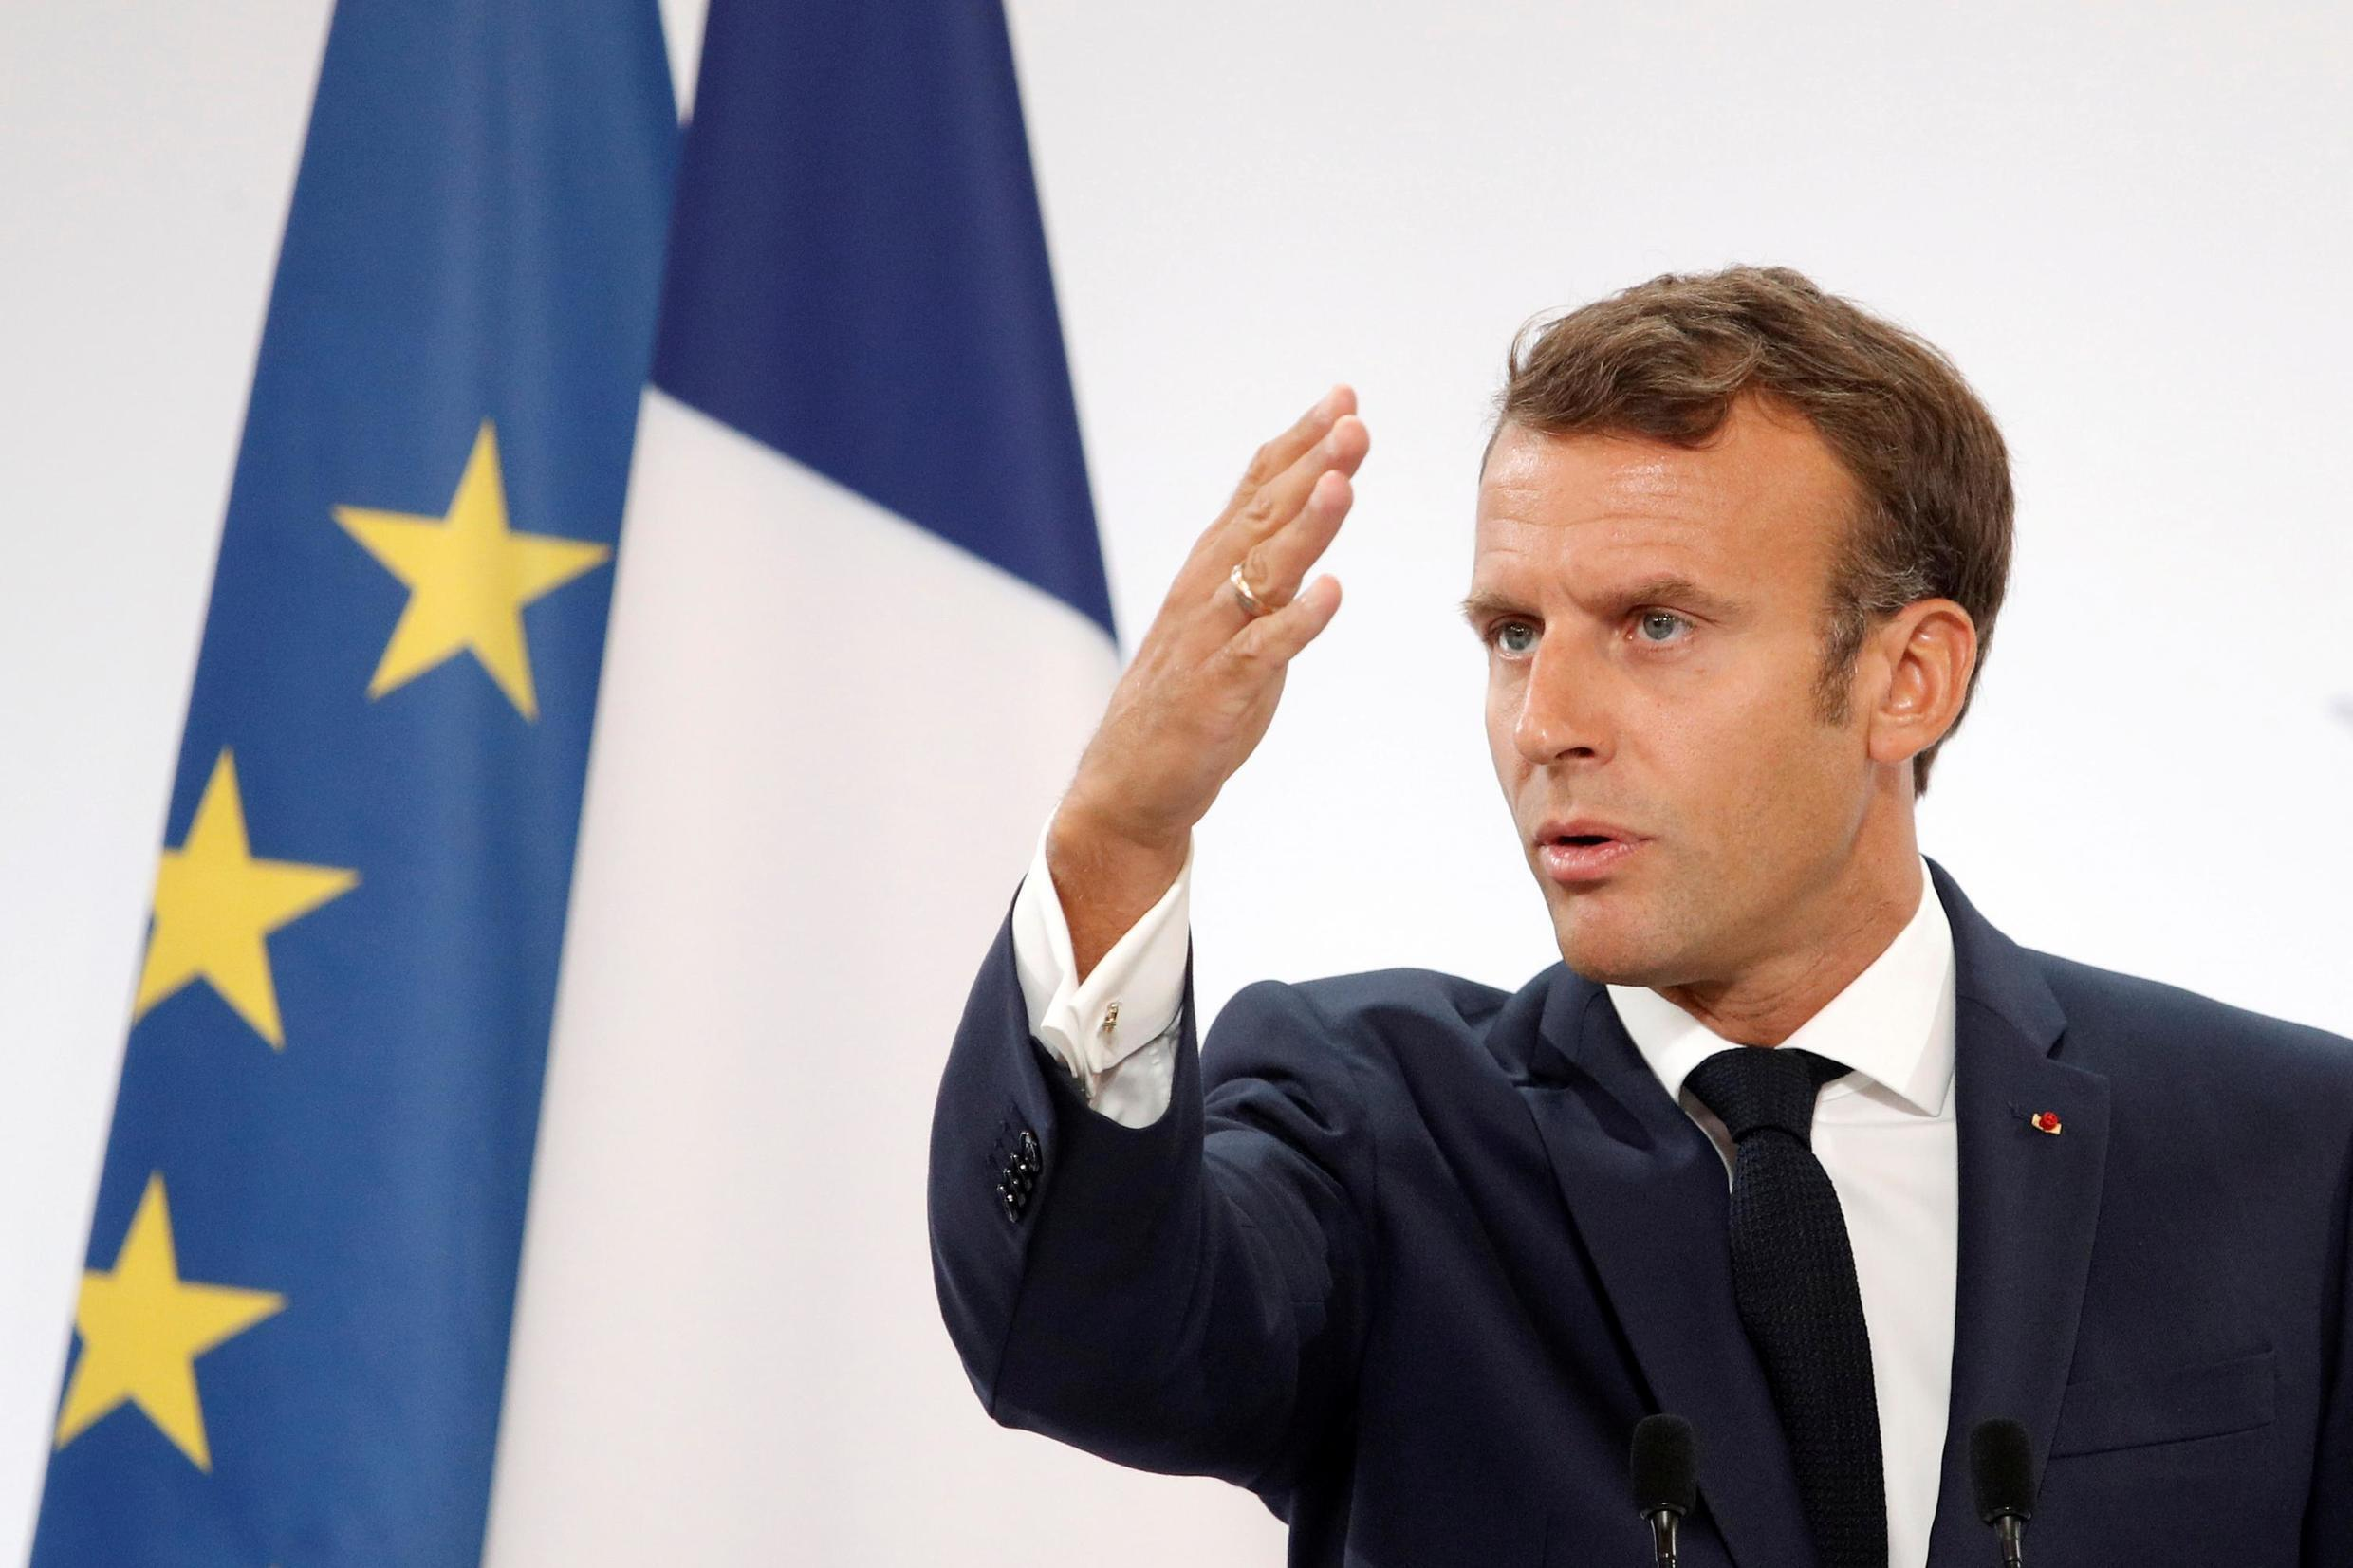 File photo of Emmanuel Macron delivering a speech  at the Elysee Palace in Paris, France August 27, 2019 Valat/Pool via REUTERS